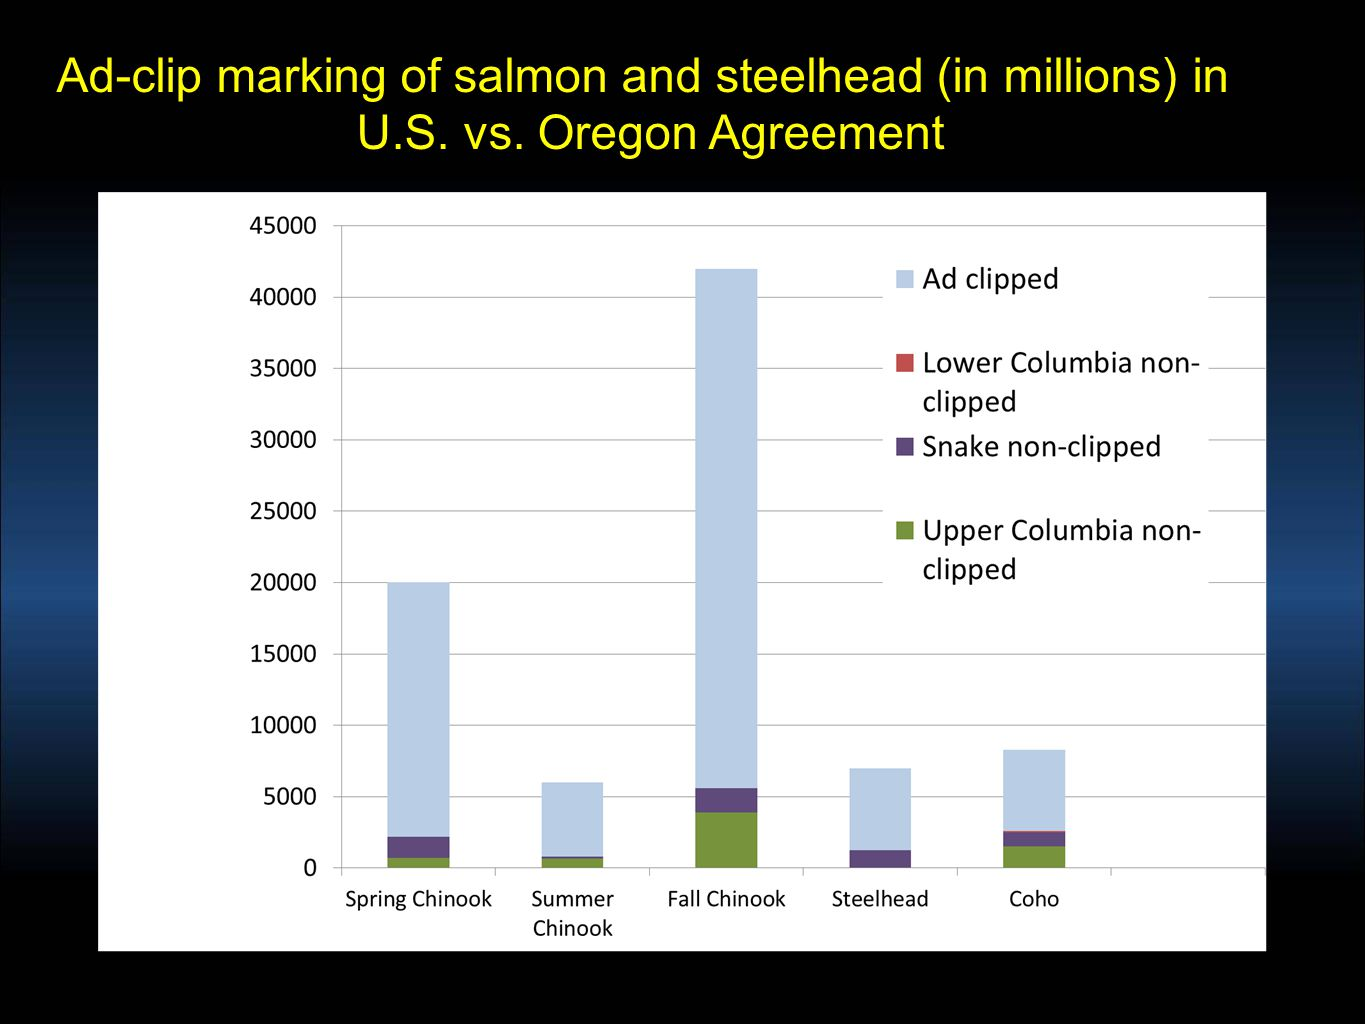 Ad-clip marking of salmon and steelhead (in millions) in U.S. vs. Oregon Agreement